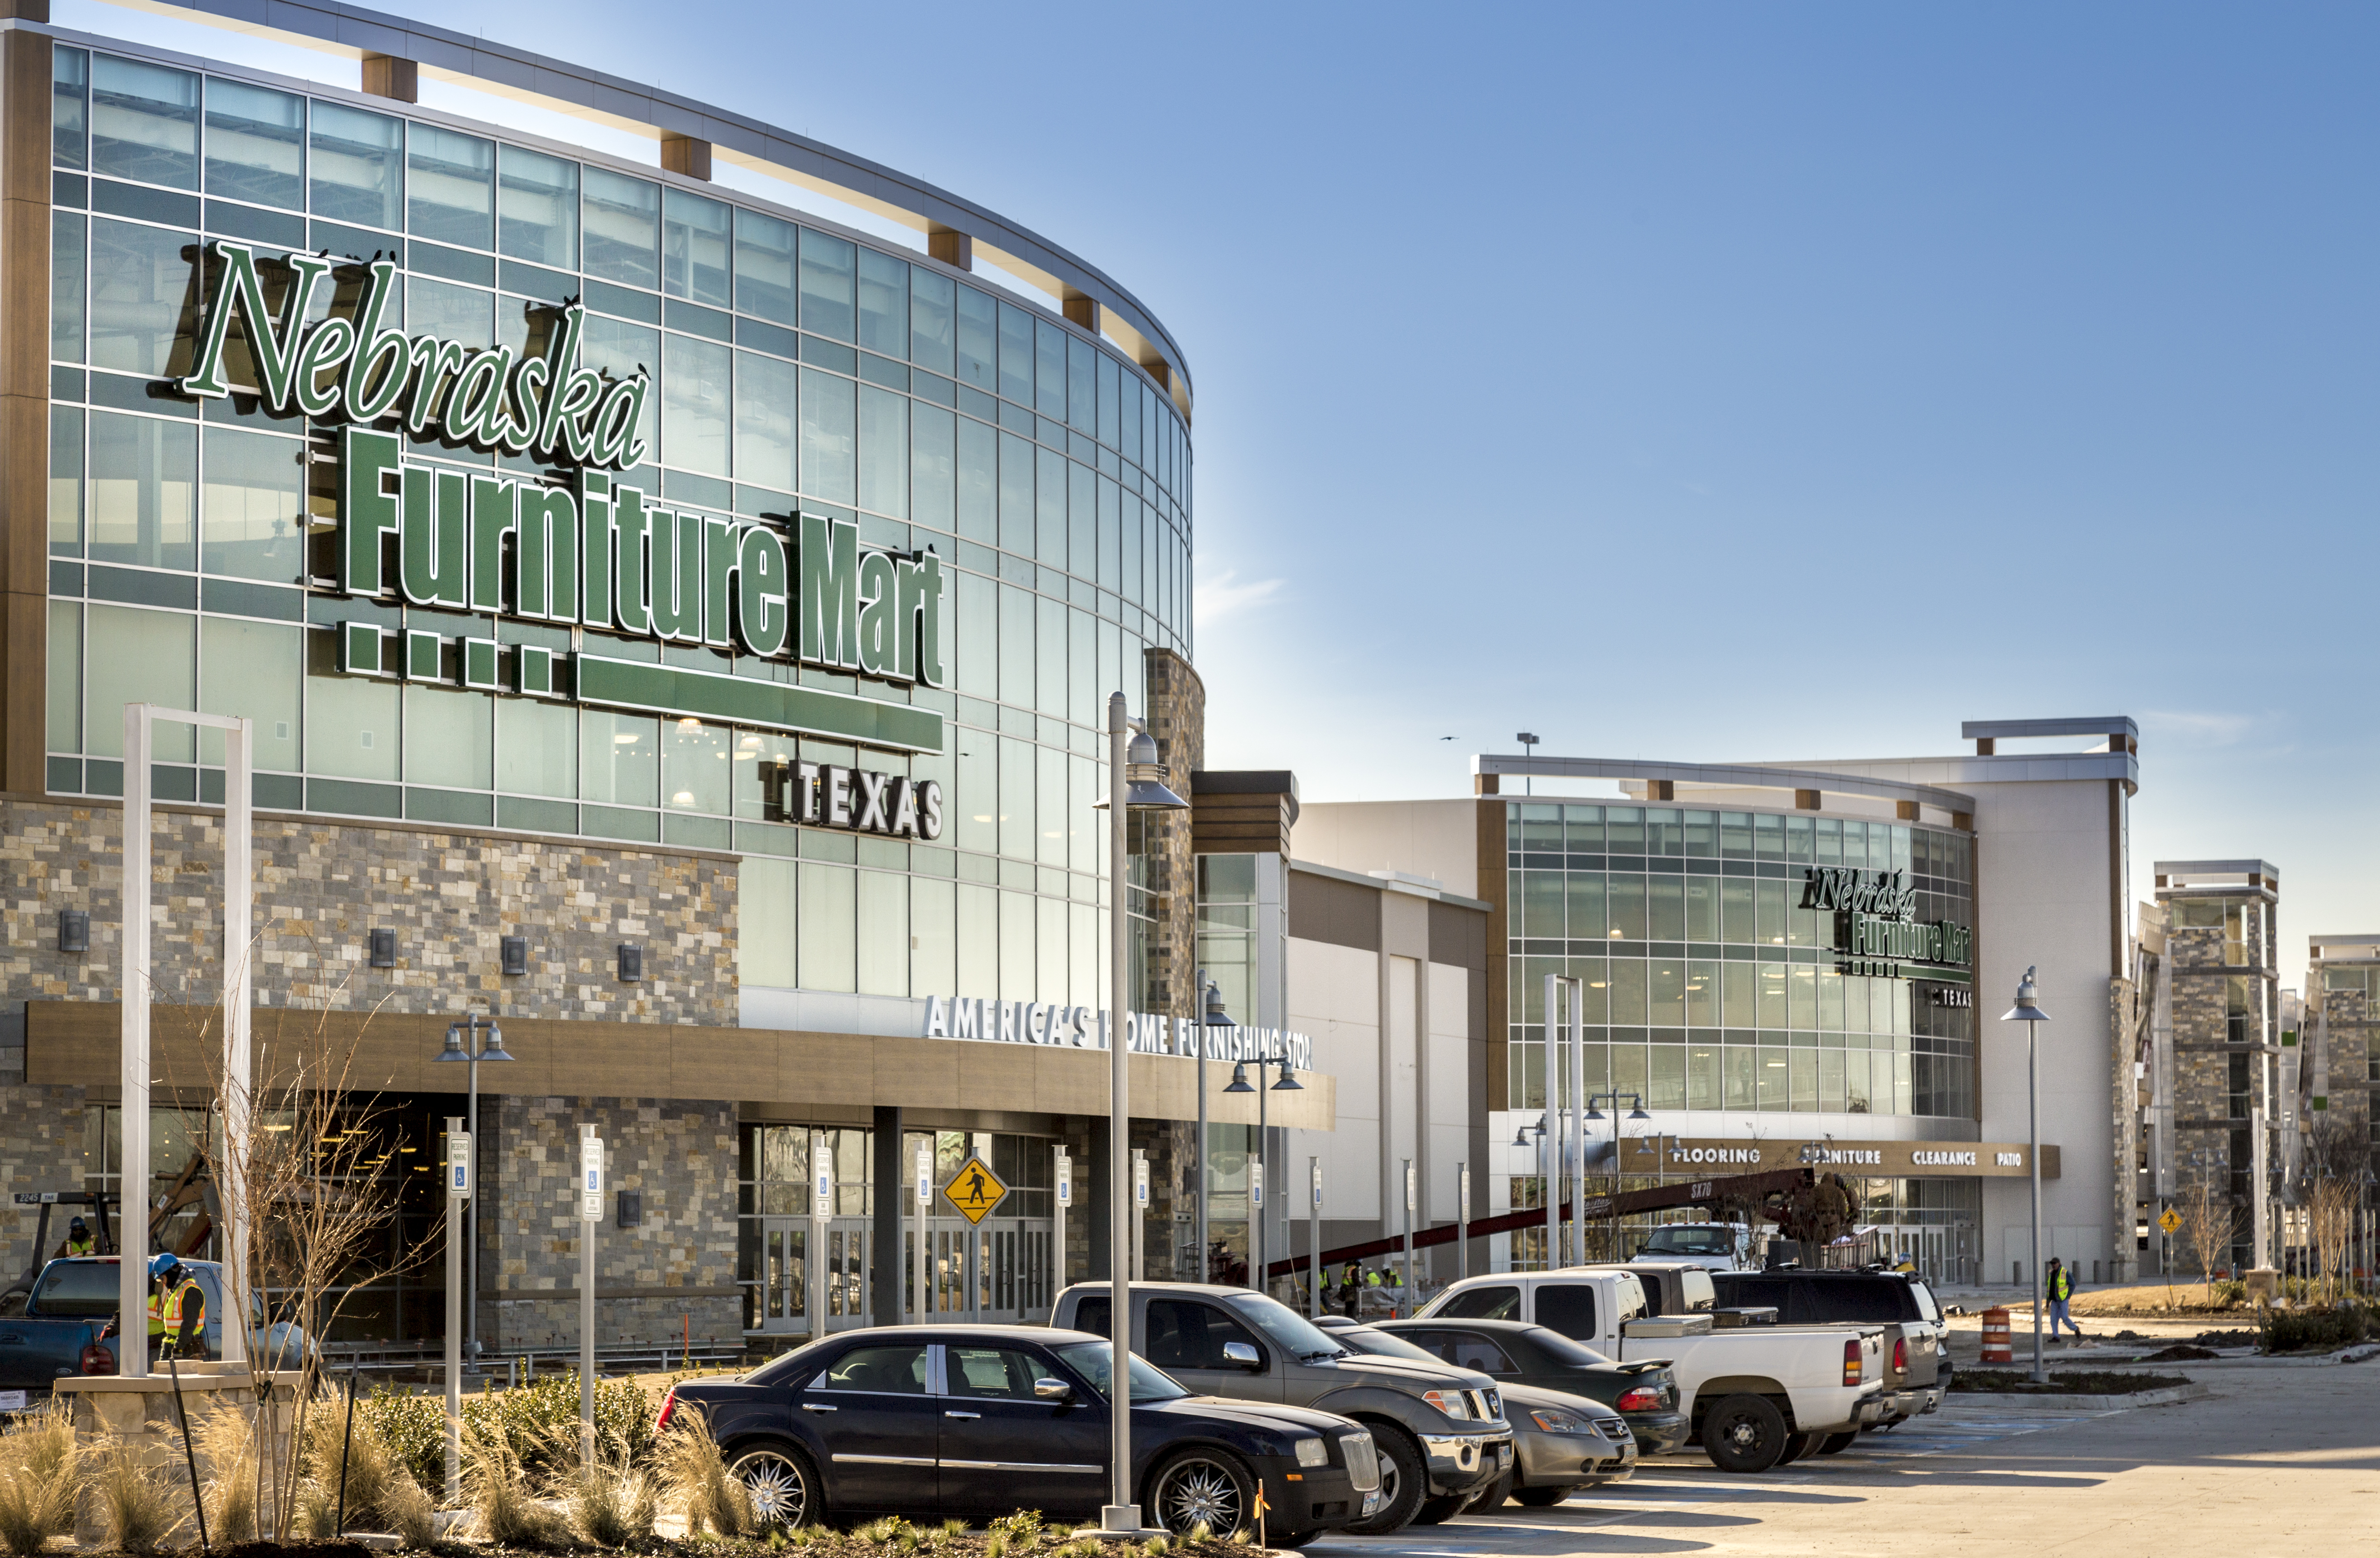 Nebraska Furniture Mart Windgate Lane